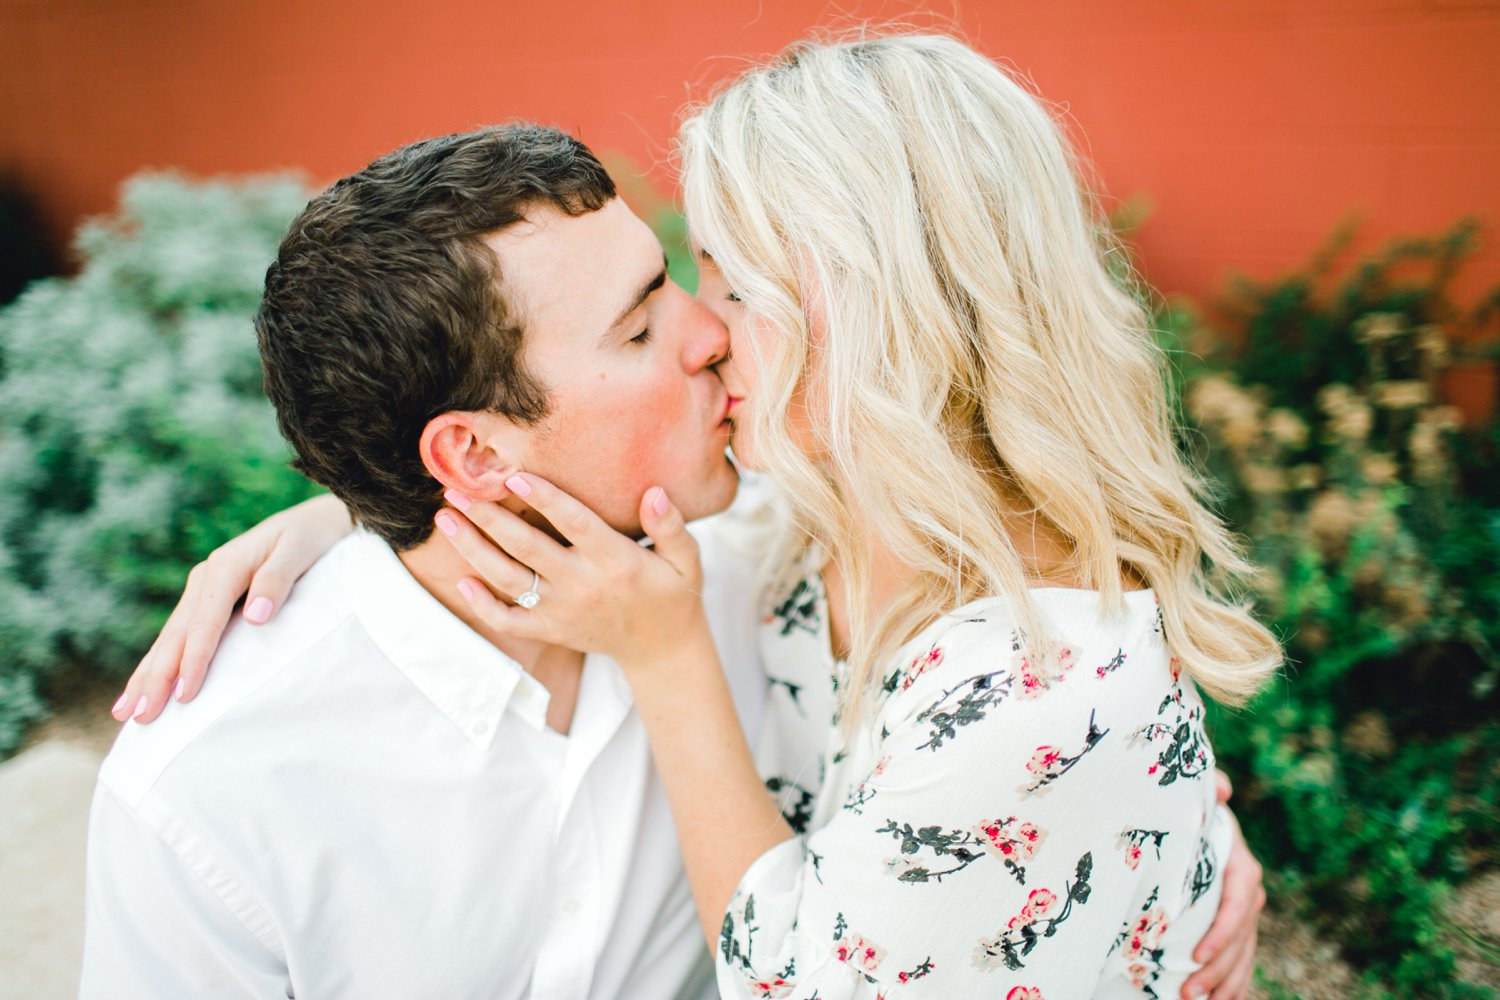 Allison_and_Clay_Smart_Engagements_ALLEEJ_Lubbock_Photographer_0047.jpg